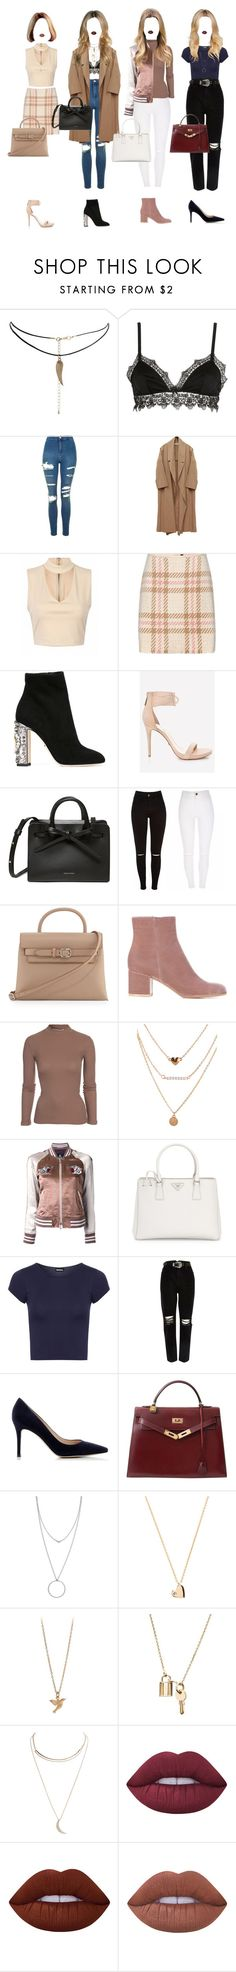 """Untitled #459"" by xxeucliffexx ❤ liked on Polyvore featuring ASOS, Ermanno Scervino Lingerie, Topshop, MARC CAIN, Dolce&Gabbana, Abella, Alexander Wang, Gianvito Rossi, NLY Trend and Guild Prime"